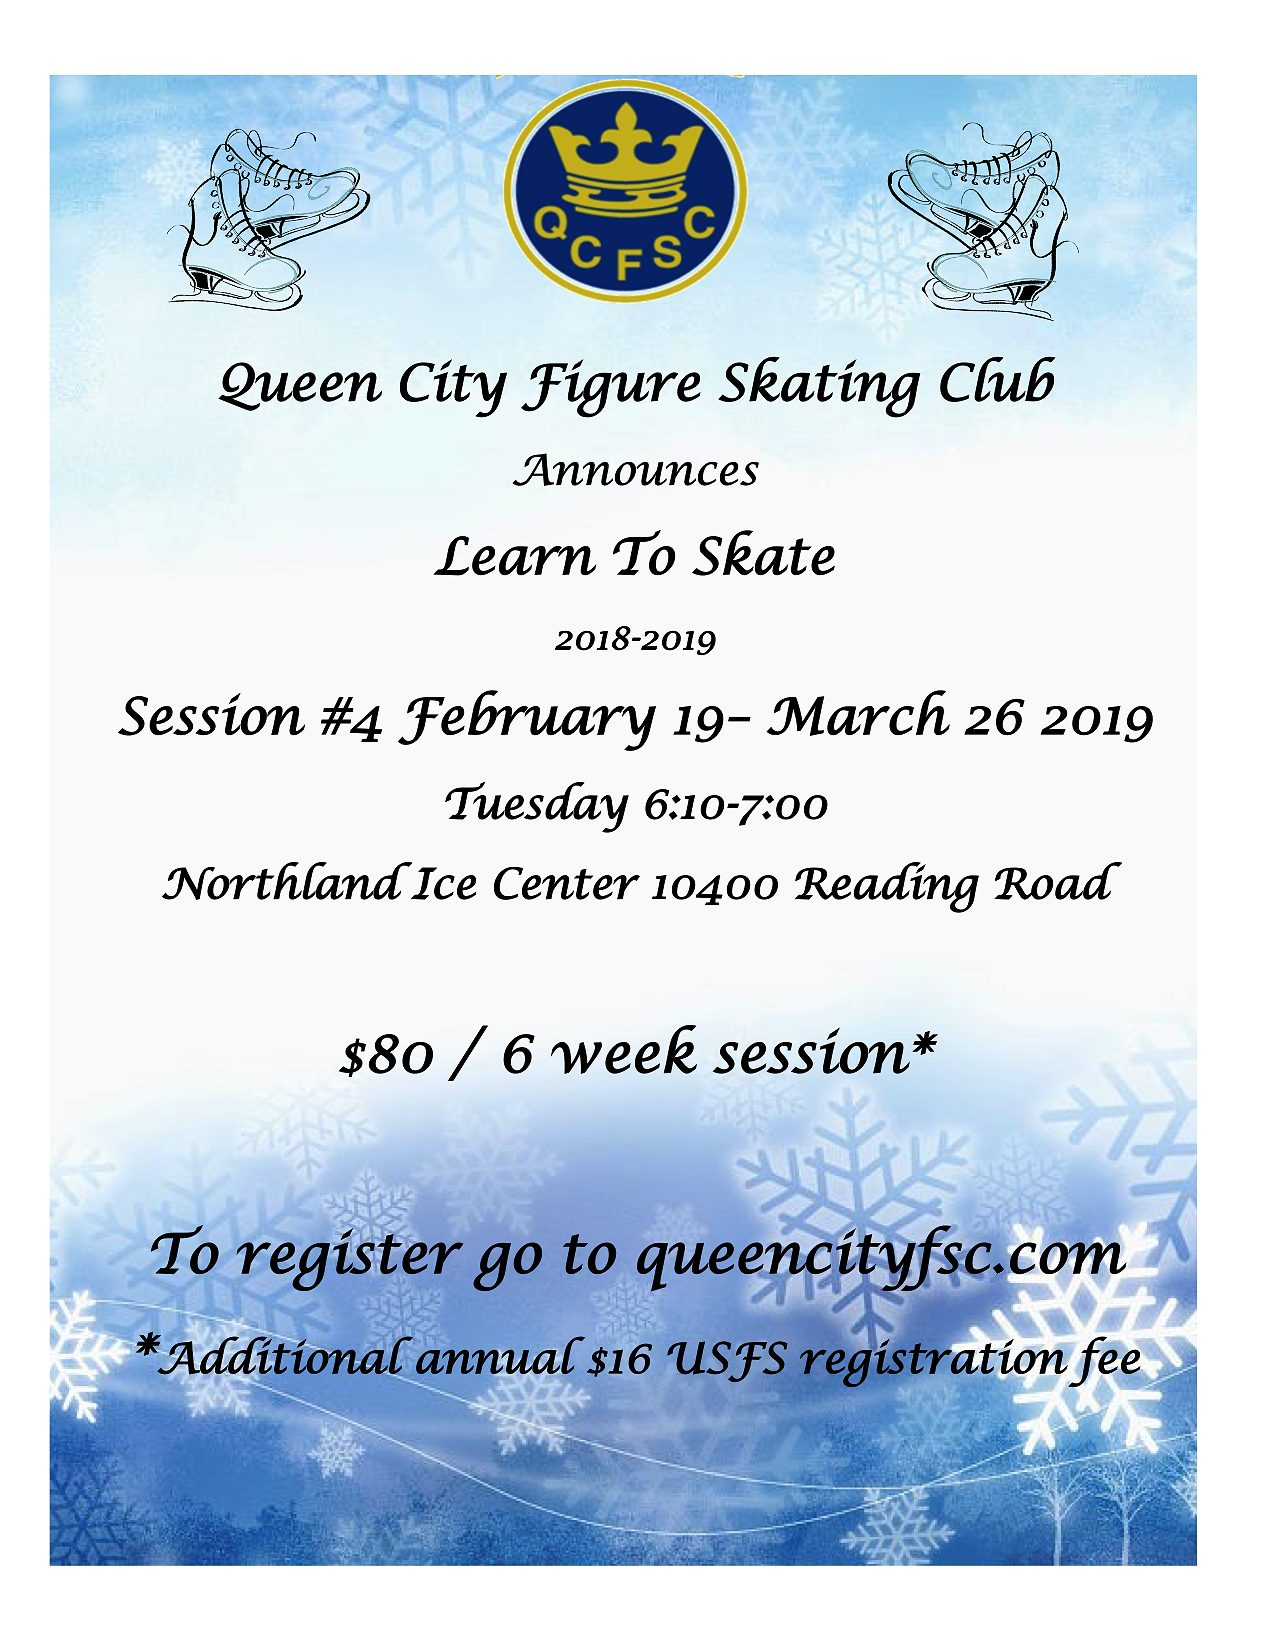 QCFSC 2018-19 Learn to Skate Session #4